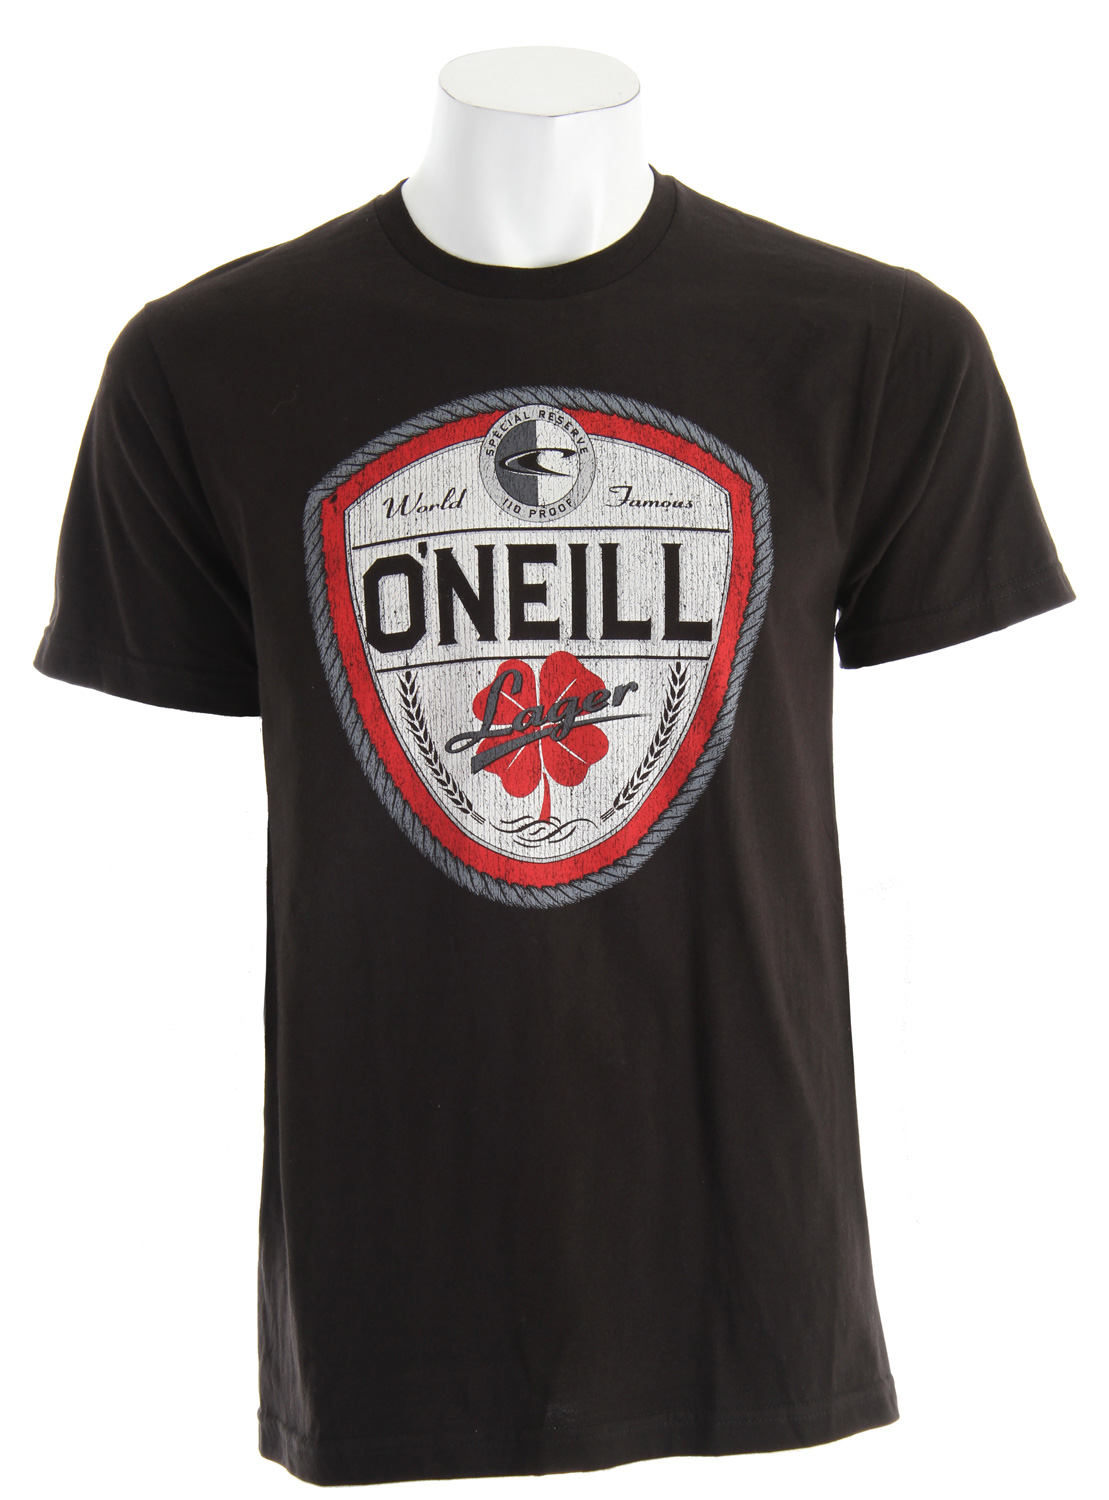 Surf Key Features of The O'Neill Dublin T-Shirt: Slim Fit Crew Neck Short Sleeve 100% ringspun cotton Softhand screenprint - $19.50